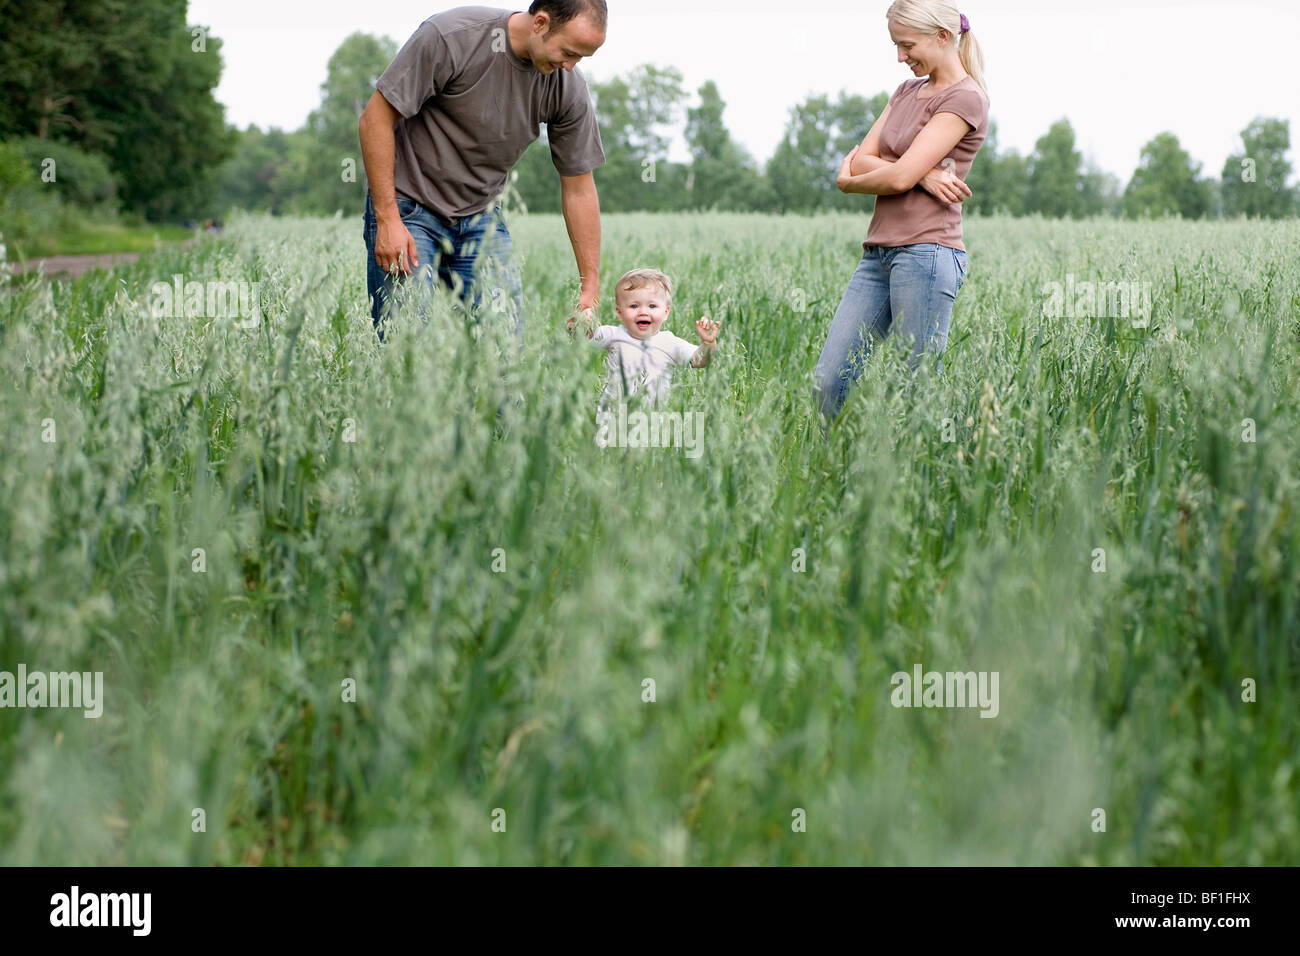 Two parents playing with their daughter in a field - Stock Image